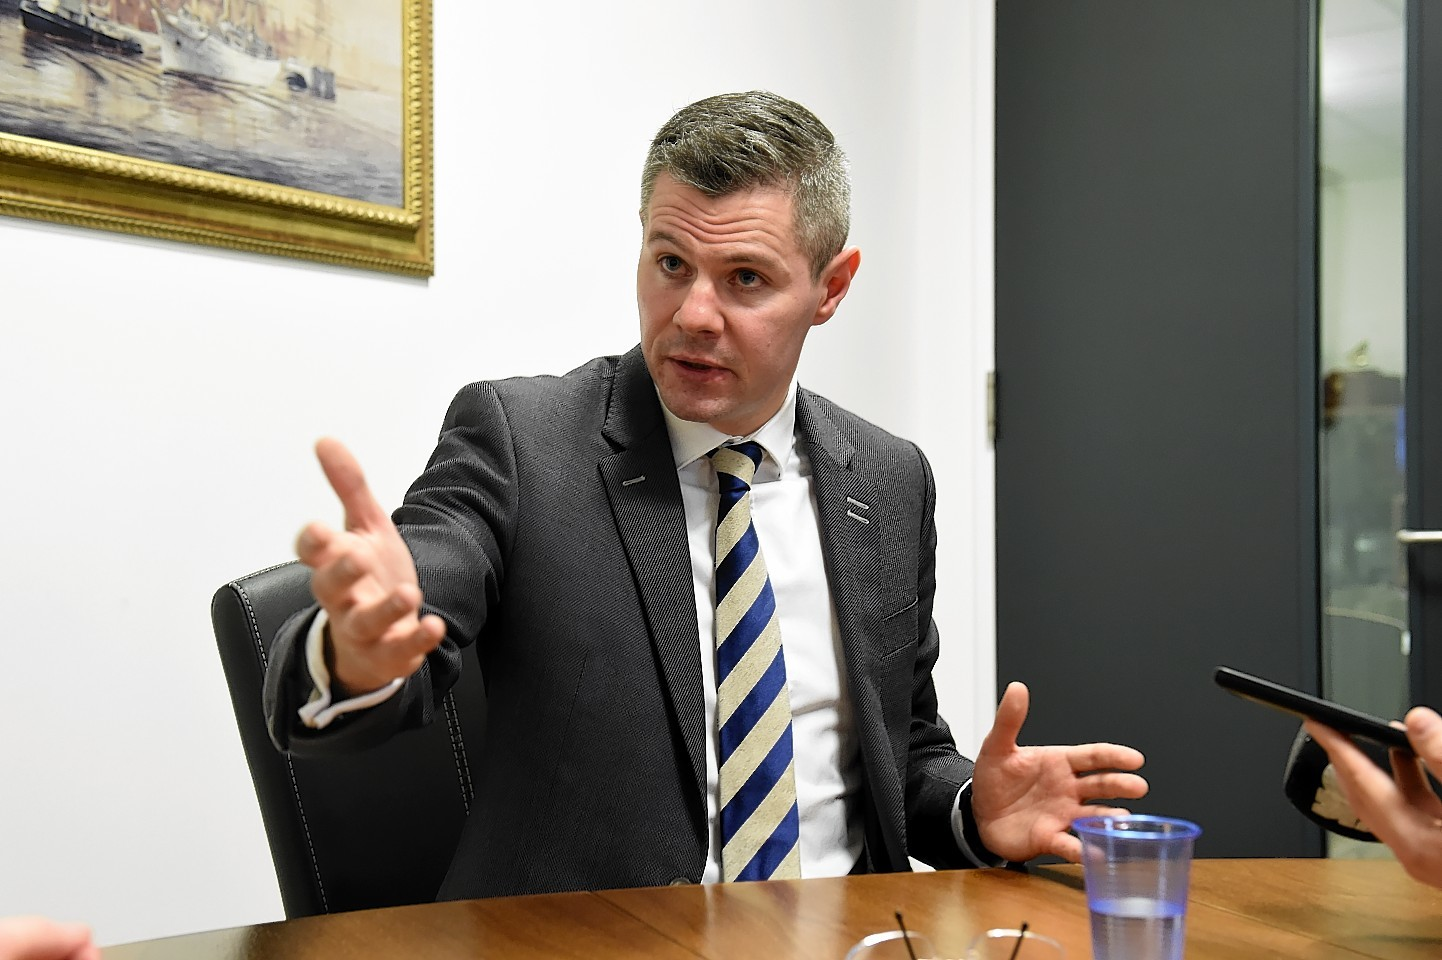 Derek Mackay has said he will work with councils to provide relief